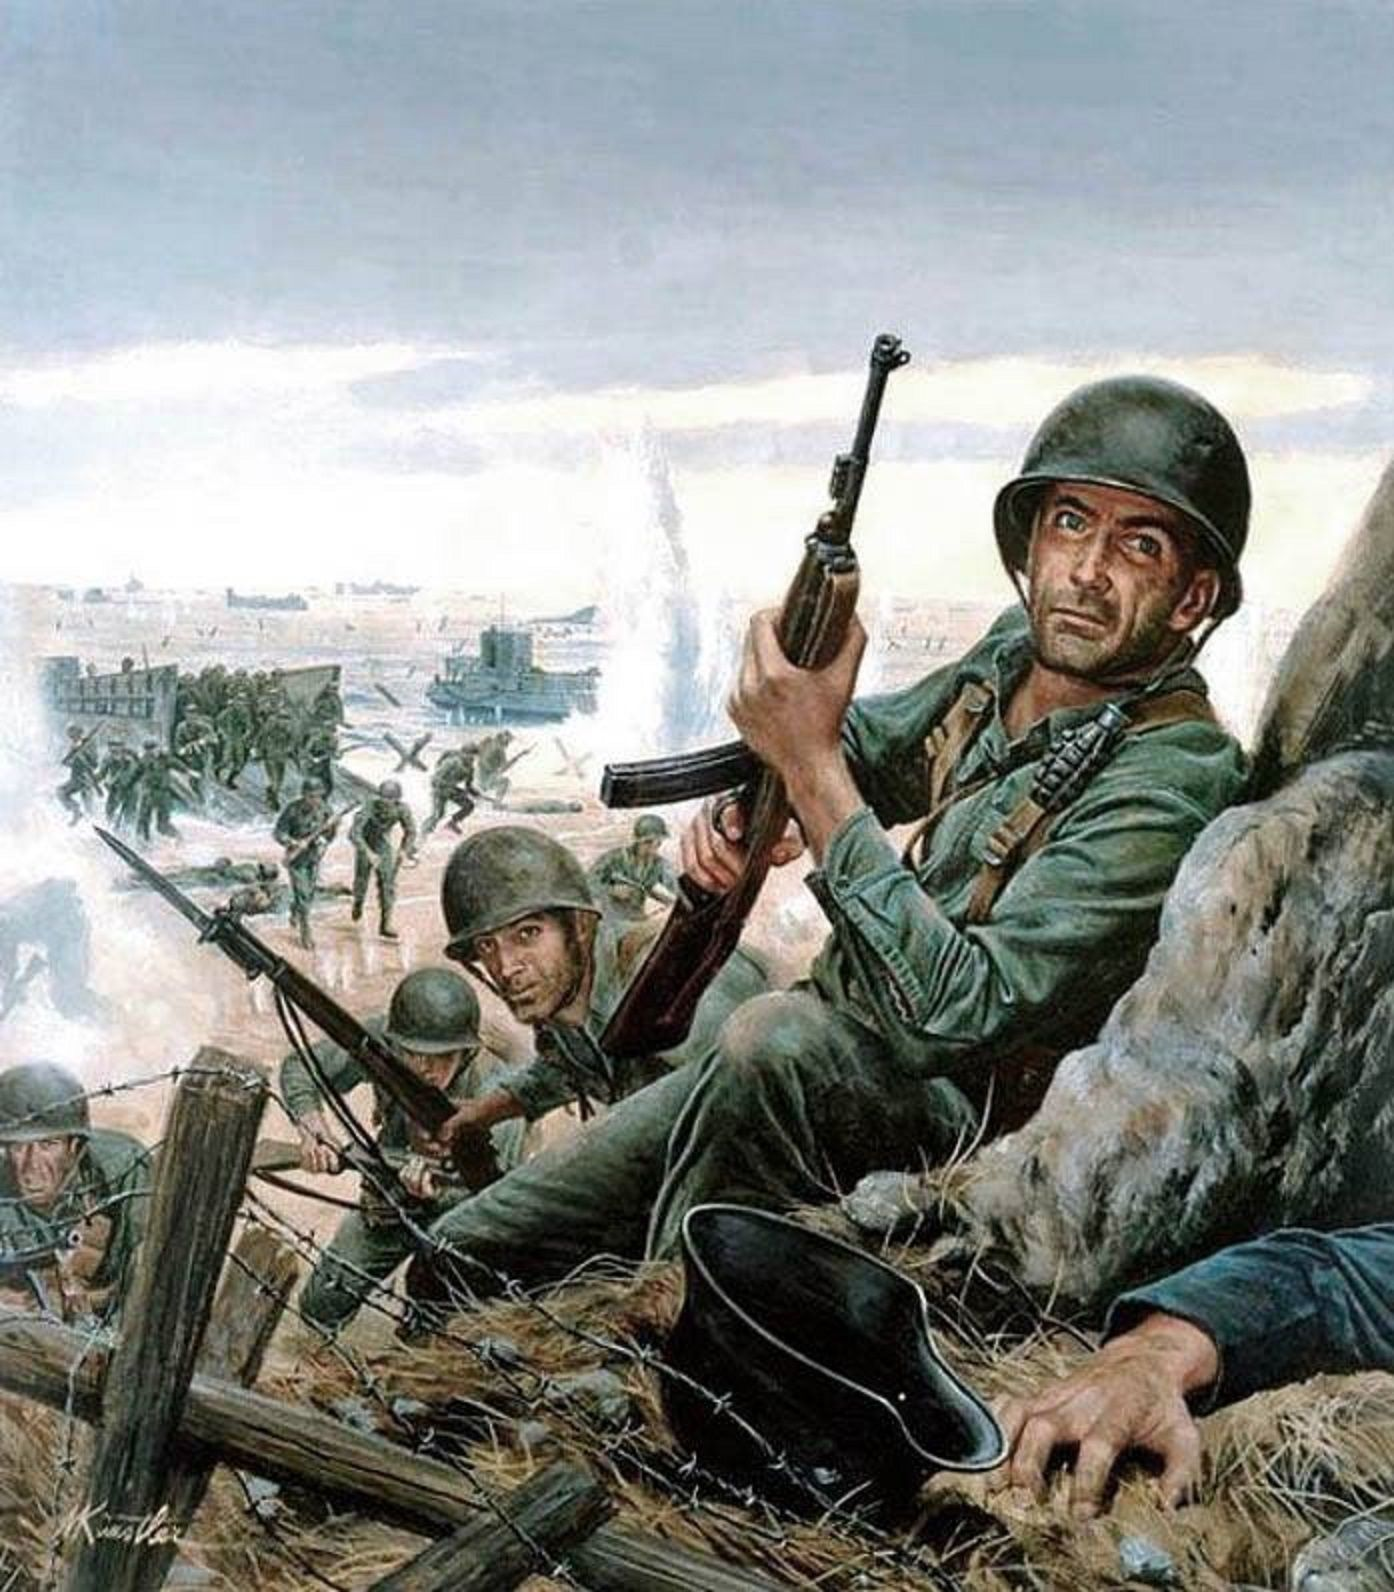 Day reenactment ww ii pictures pinterest - Art Illustration World War Ii